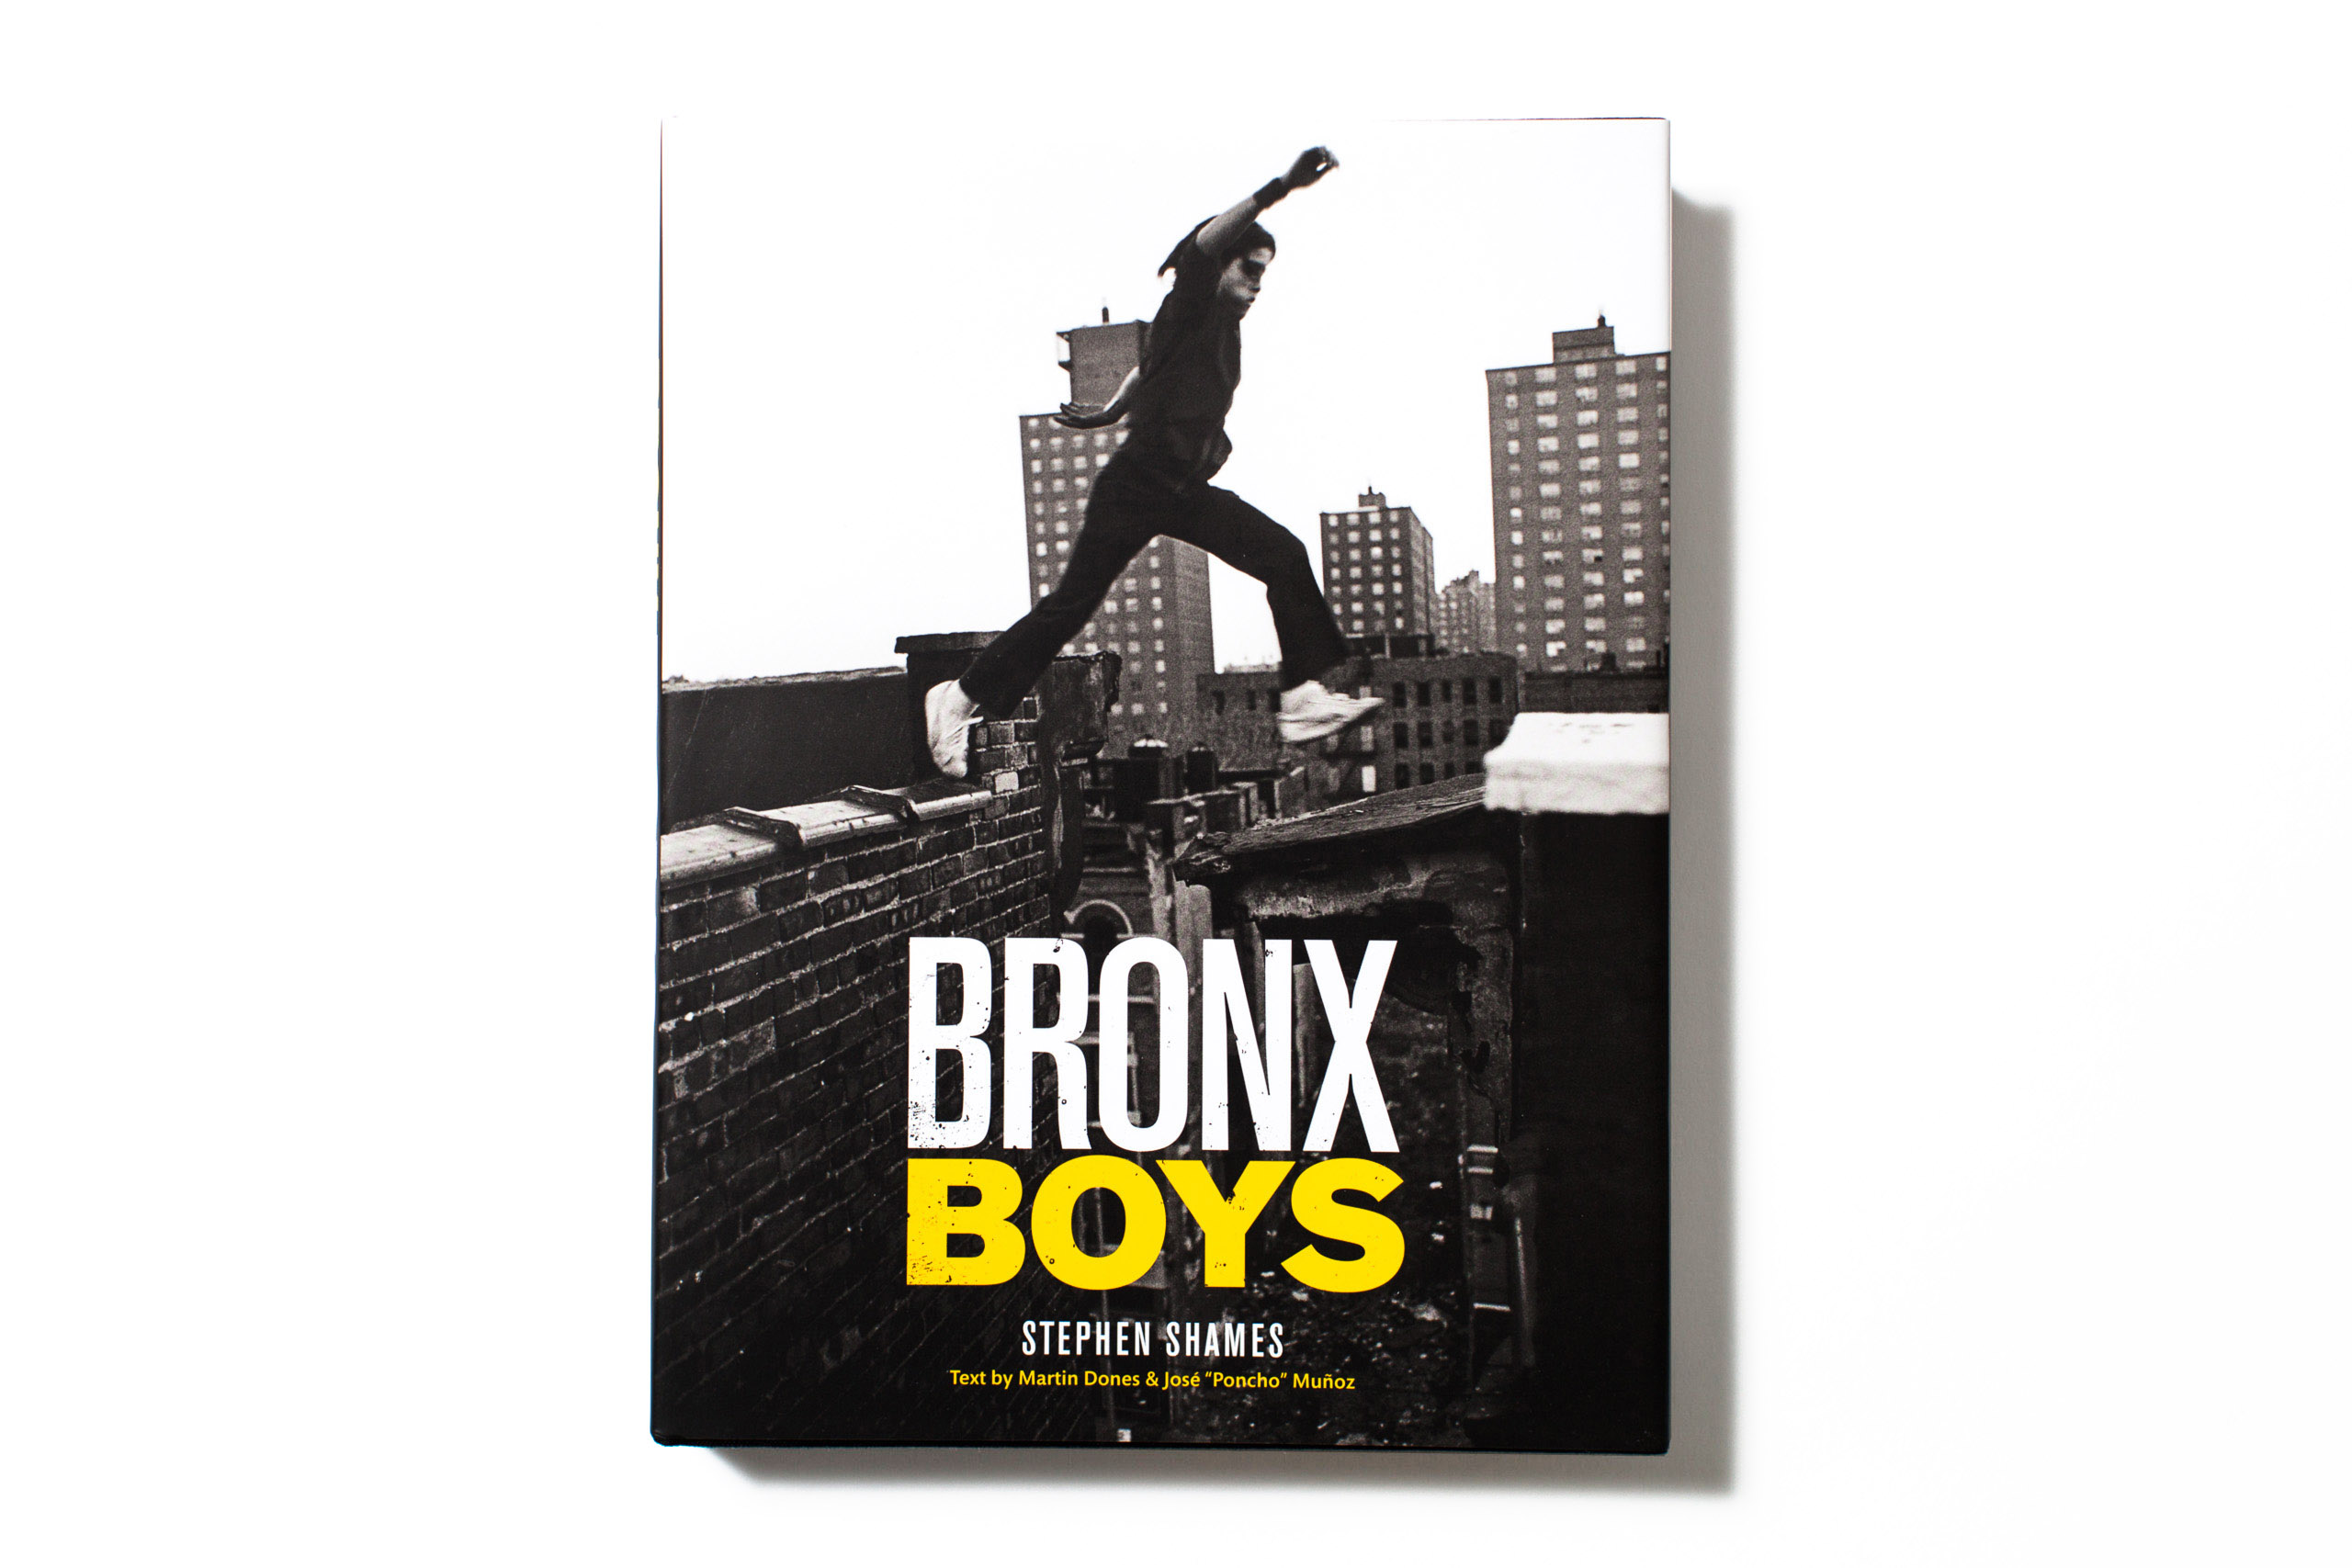 Bronx Boys                                by                               Stephen Shames, published by                               University of Texas Press, selected by                                Vince Aletti, photography critic, The New Yorker.